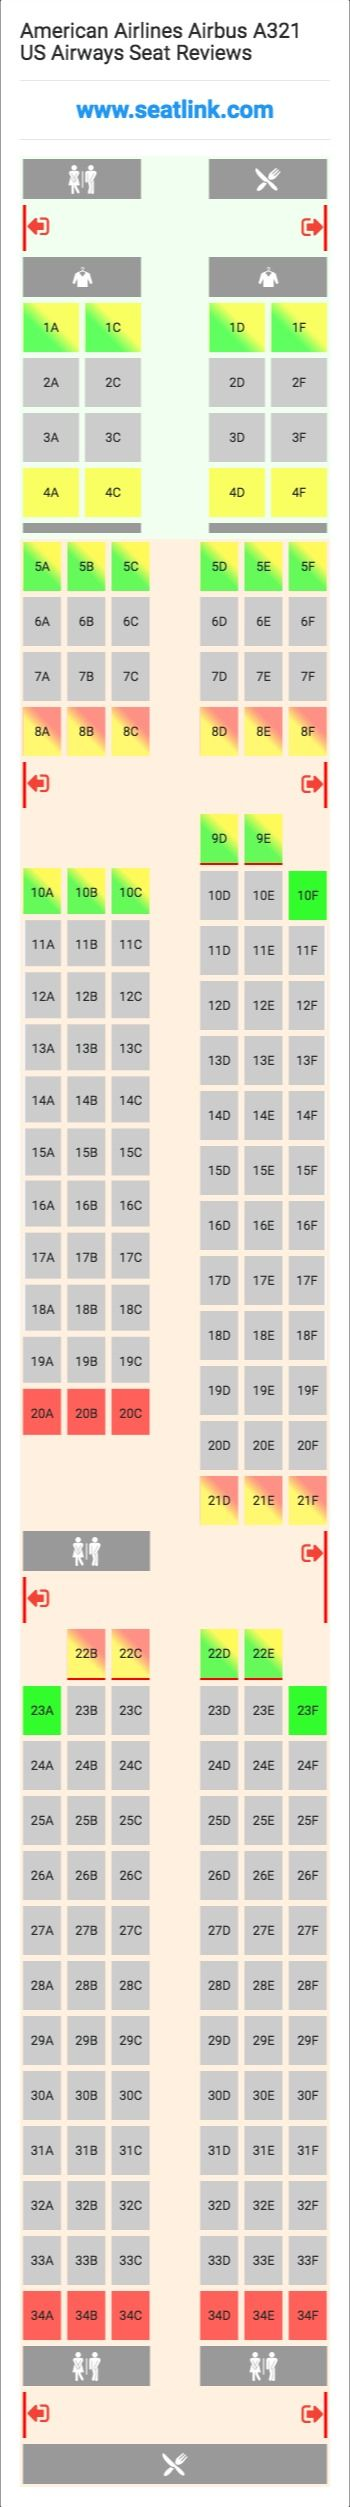 American Airlines Airbus A321 US Airways 321 Seat Map Airline - Us Airways A321 Seat Map